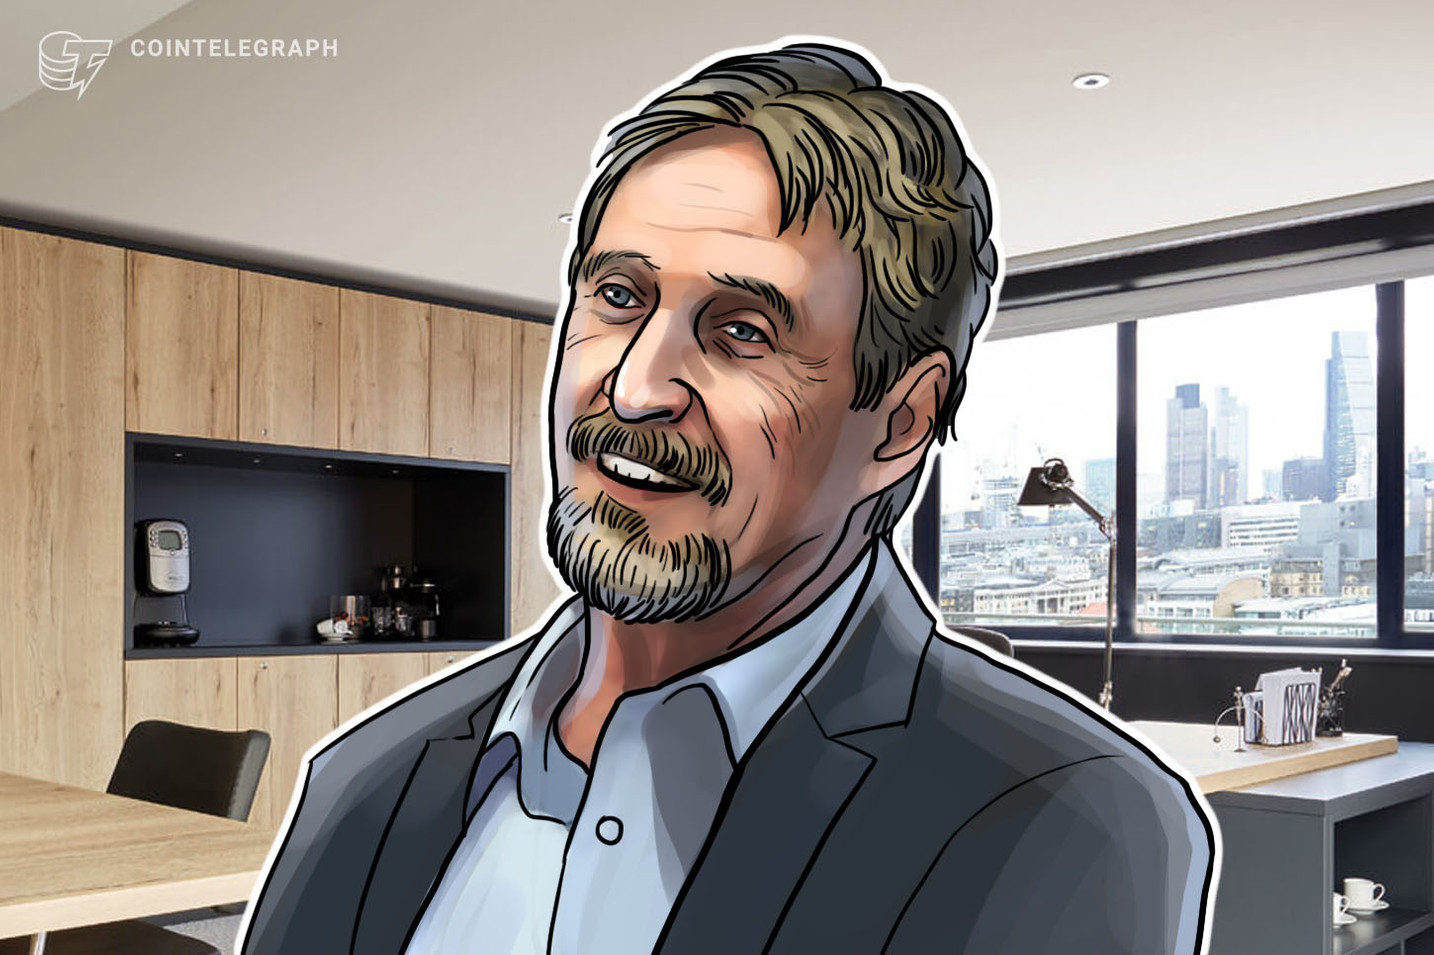 Bloomberg: John McAfee Pauses Plan to Out Satoshi Nakomoto's Identity, Fearing Lawsuit